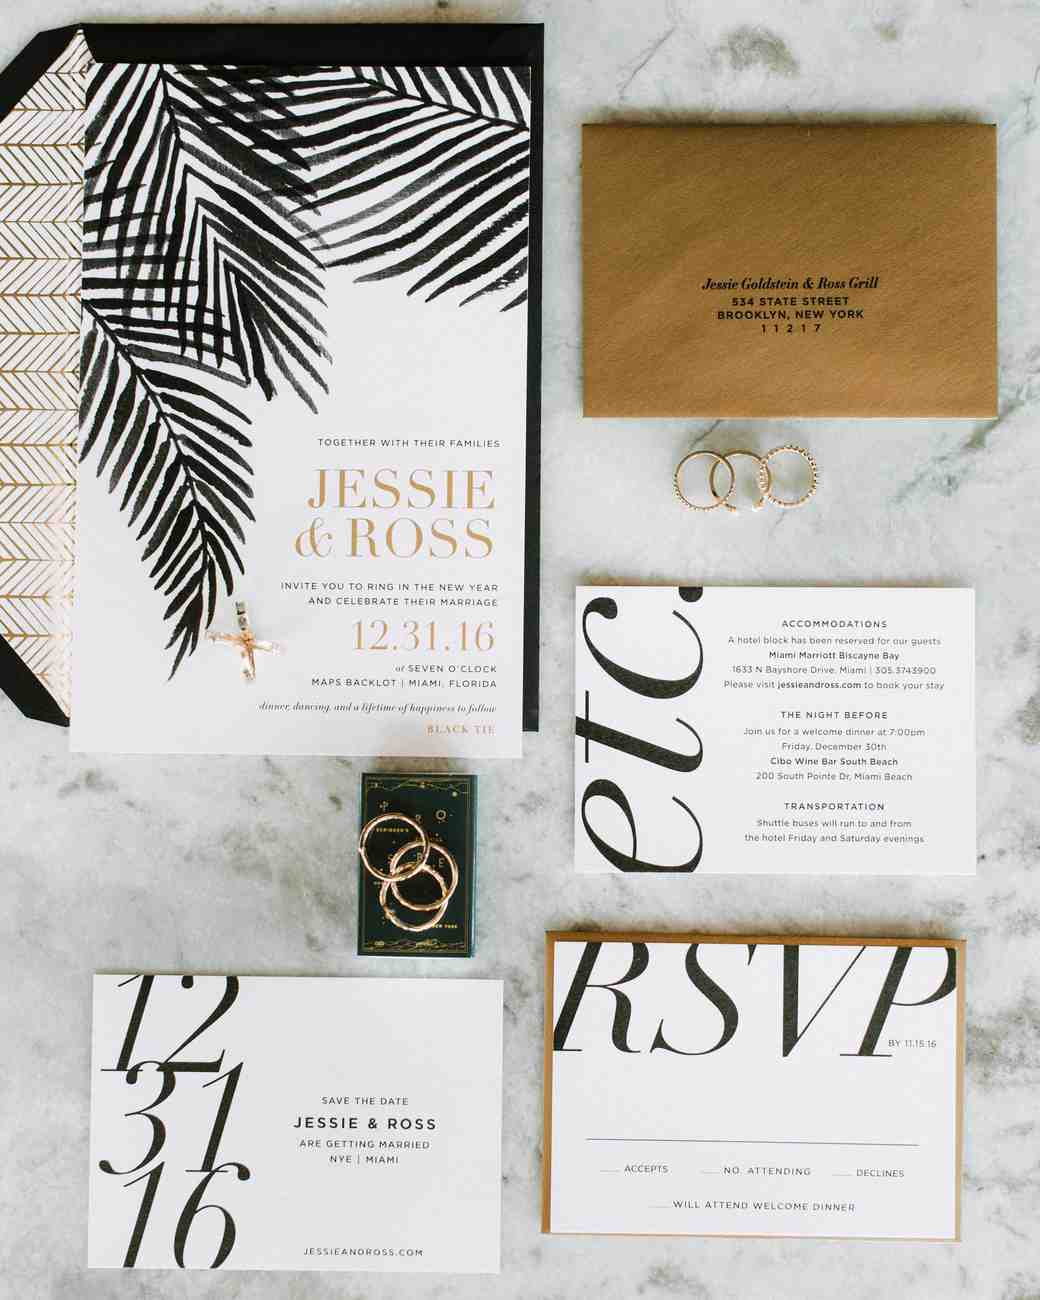 When Do I Send Out Wedding Invites: 30 Modern Wedding Invitations We Love